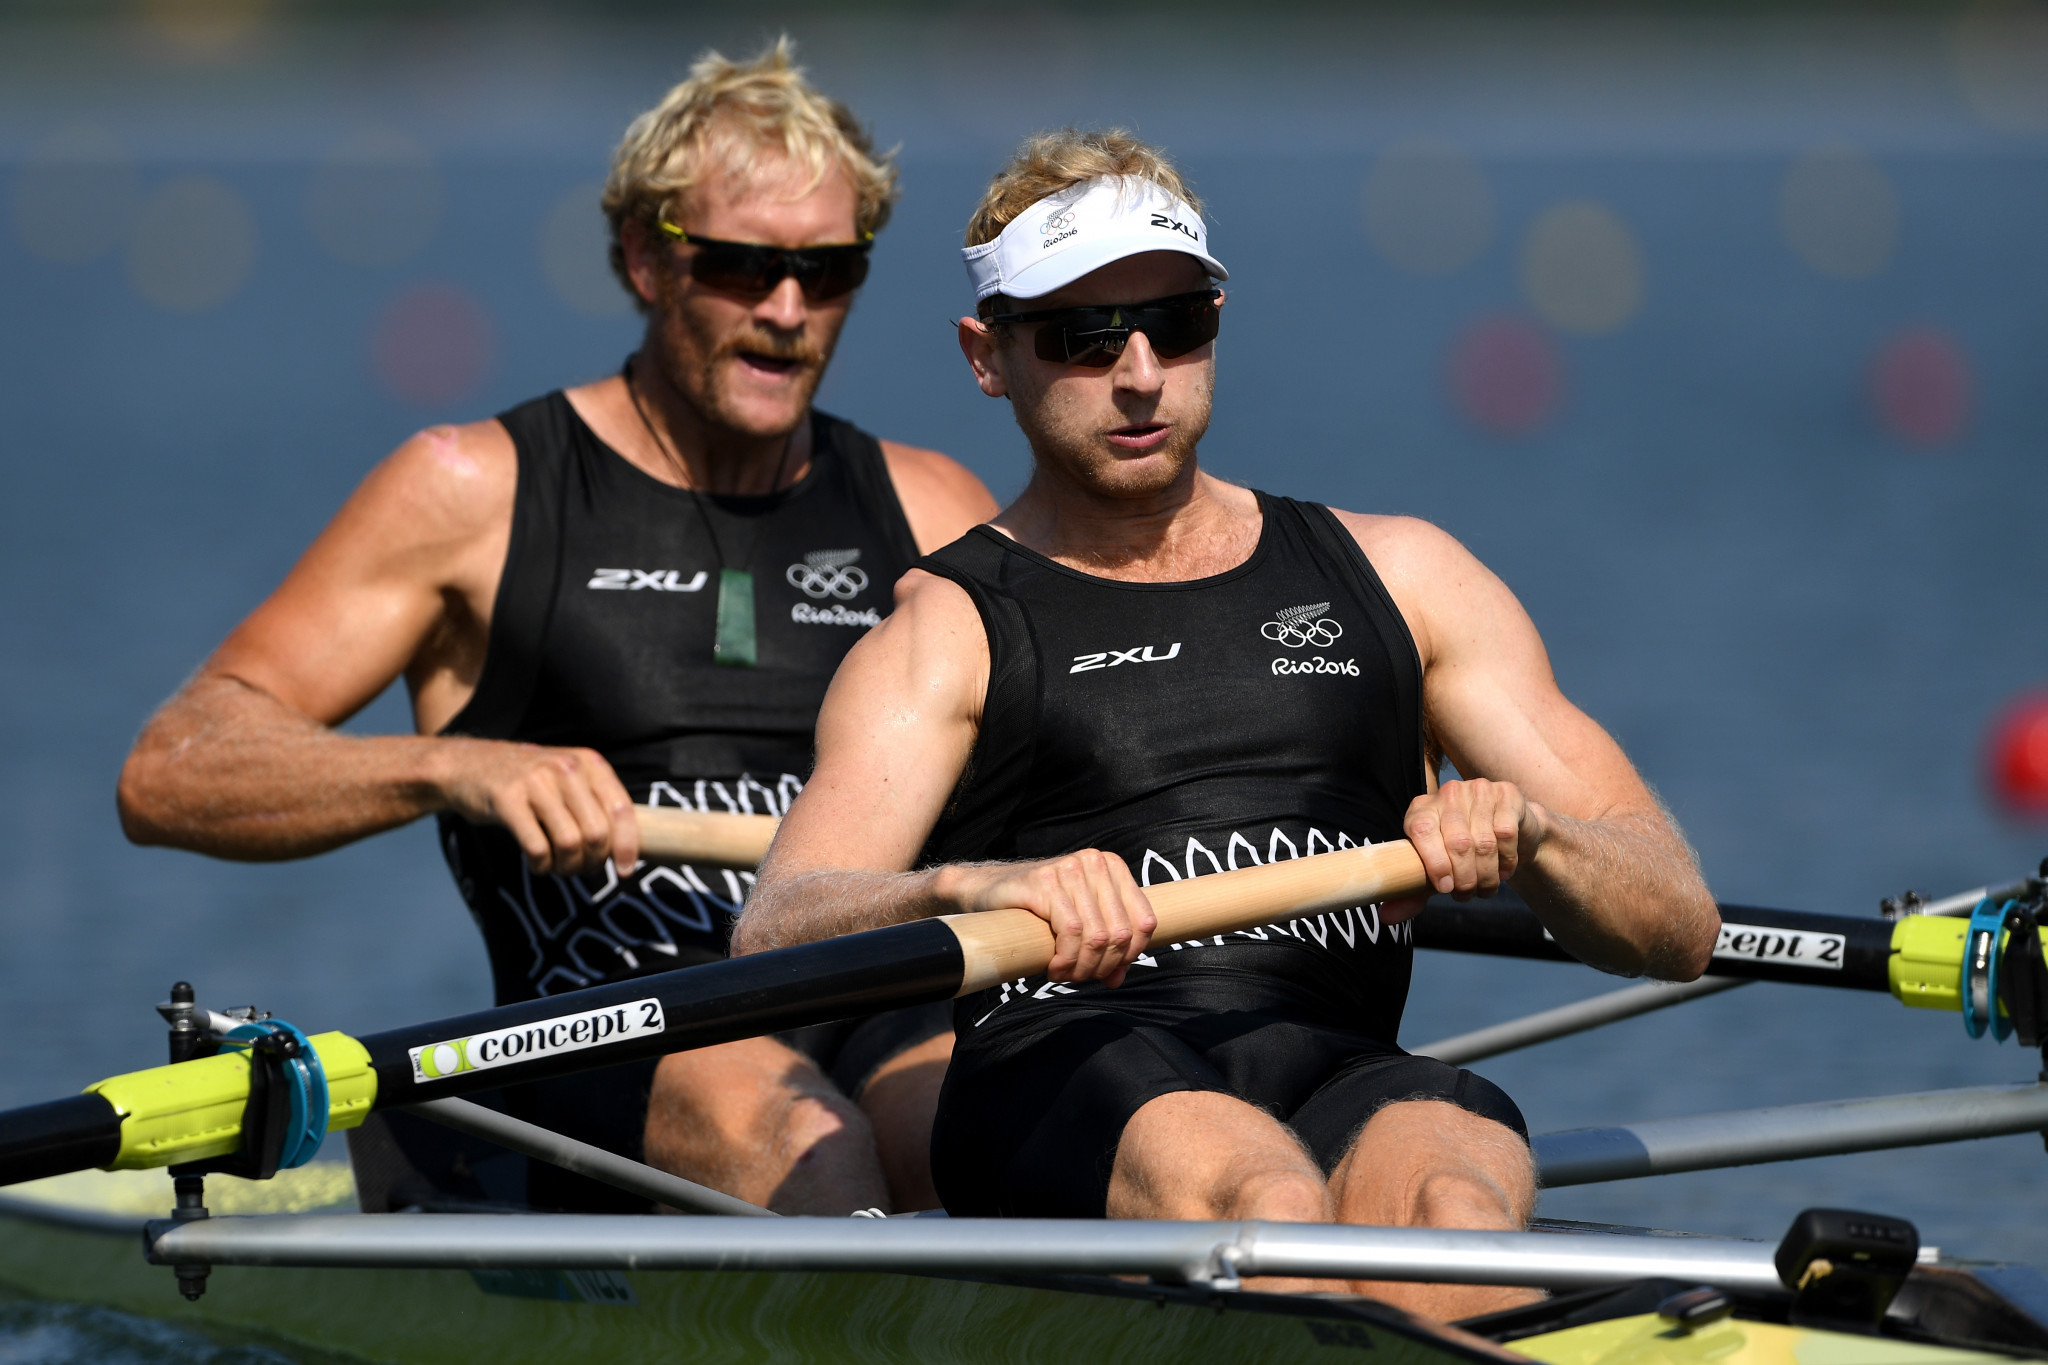 Hamish Bond has made the switch from rowing to cycling  ©Getty Images